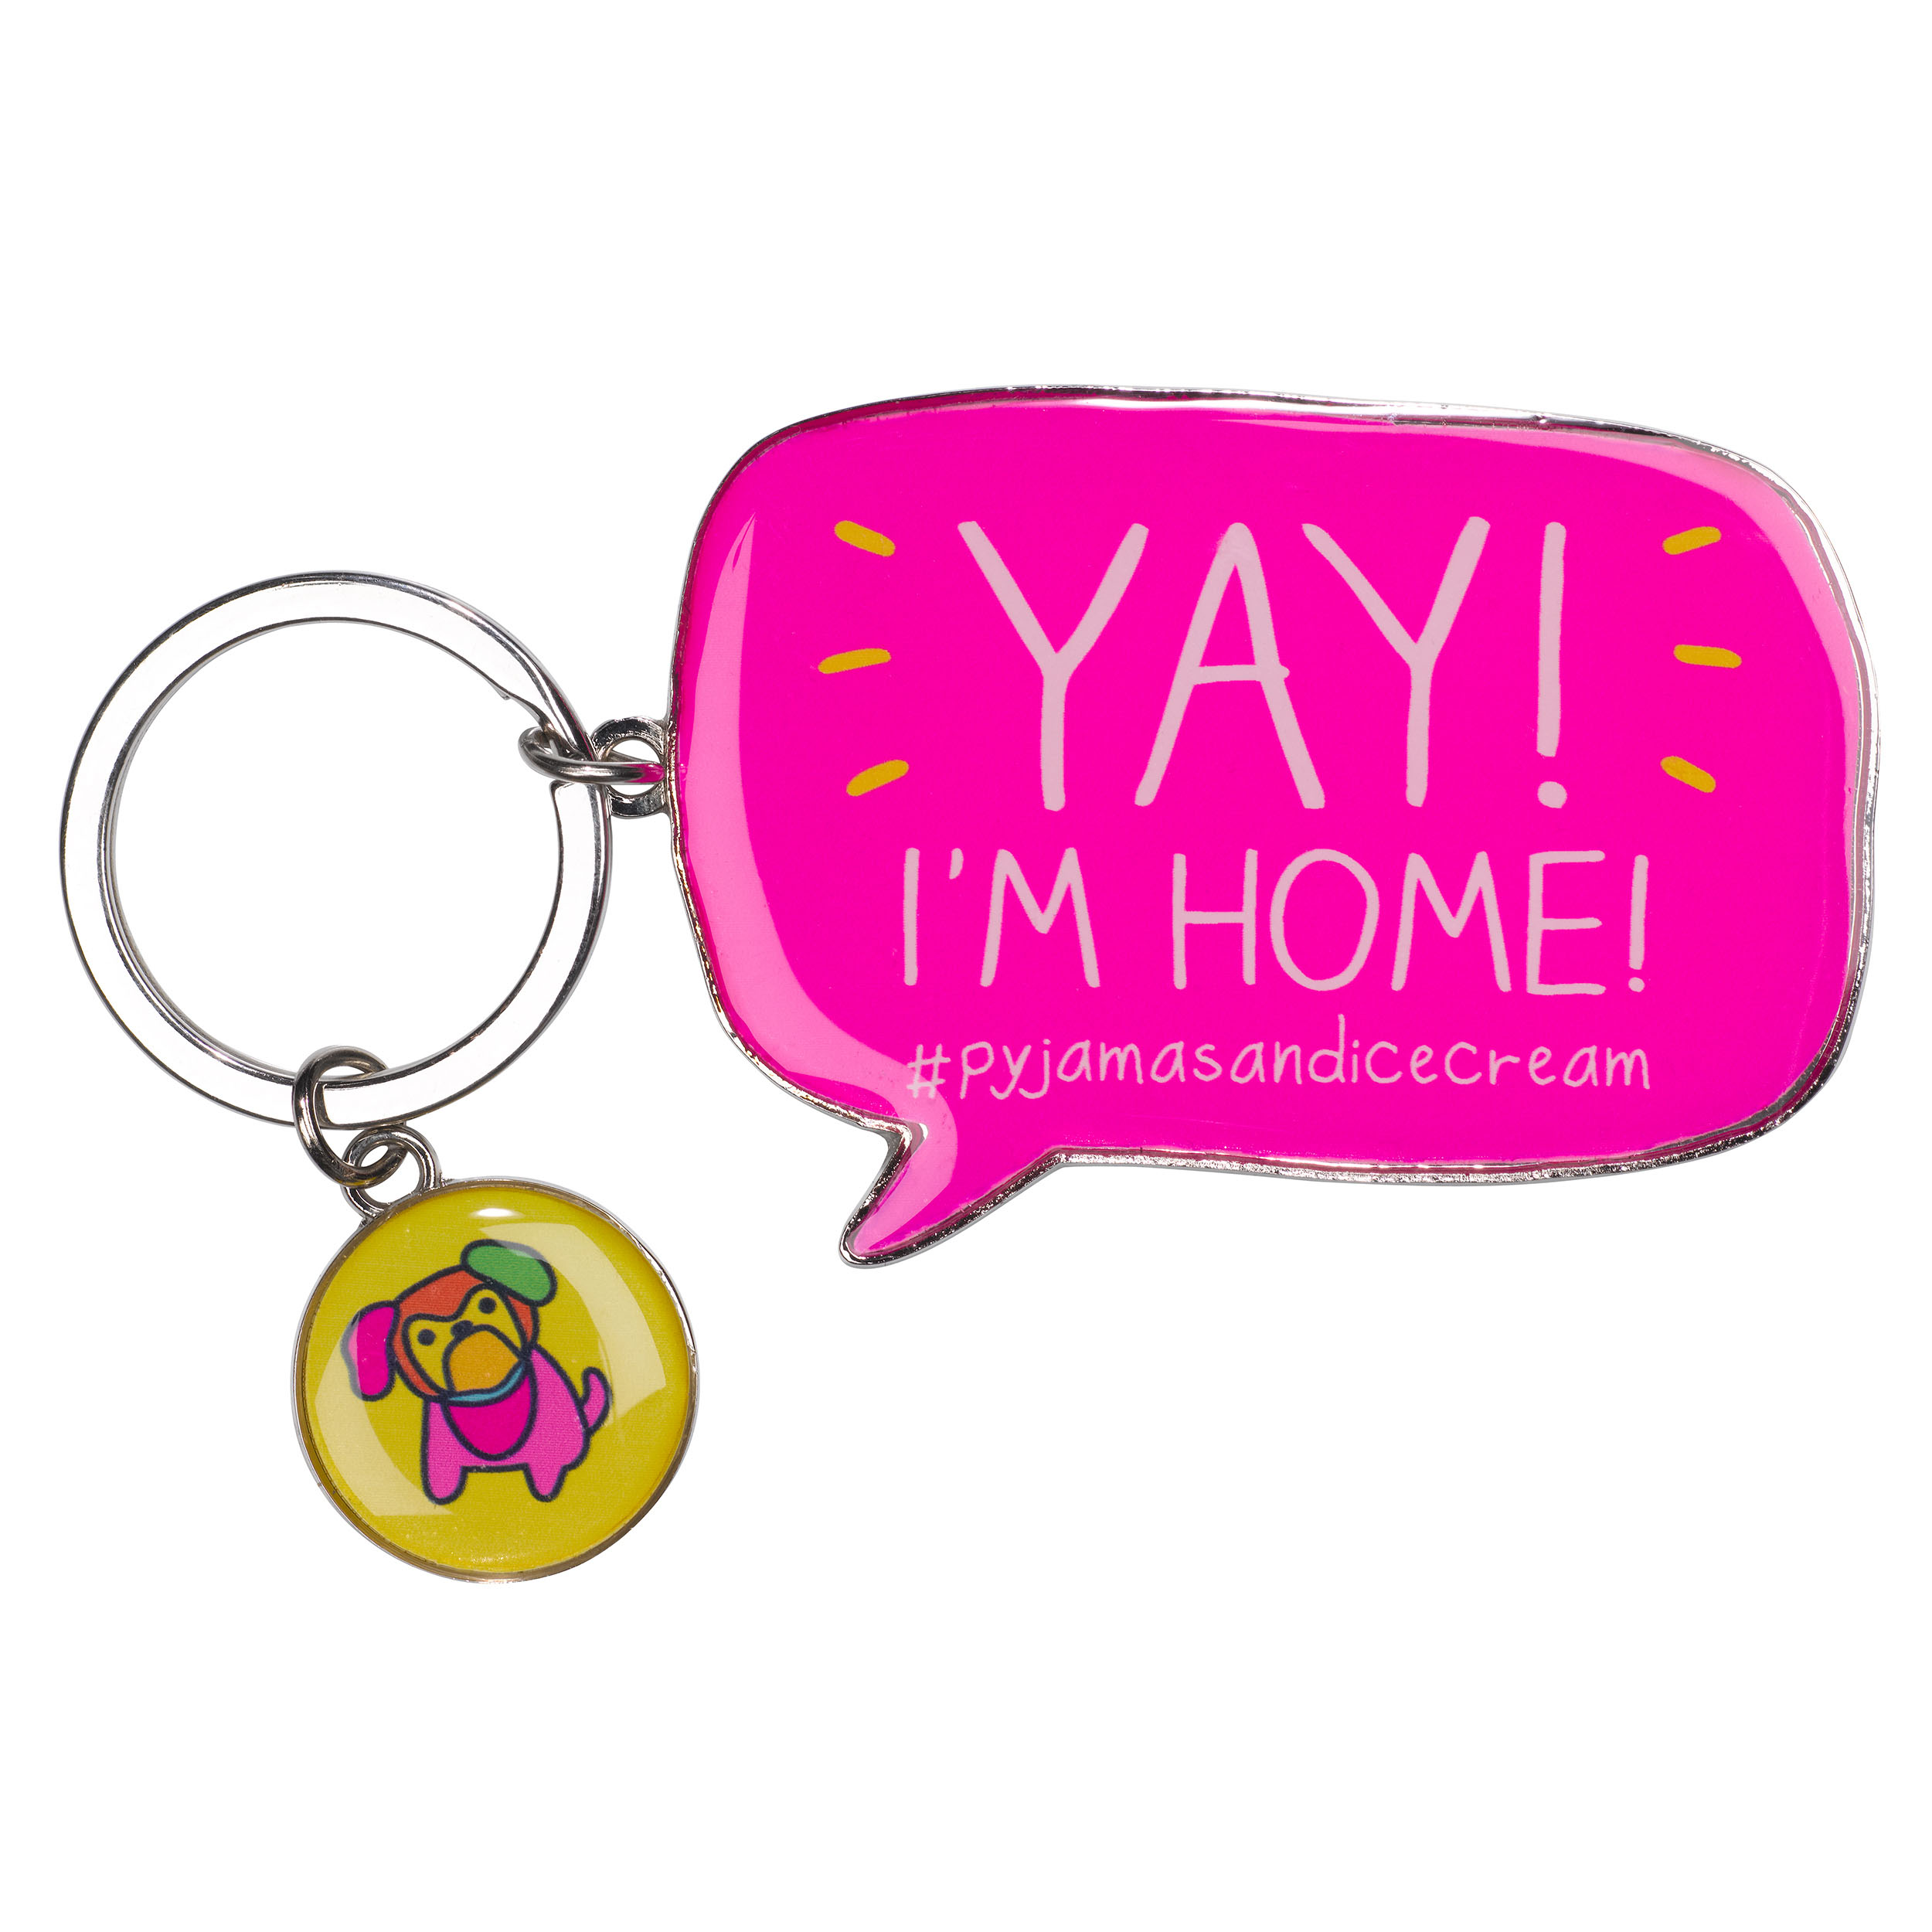 Yay! I'm Home' Keyring